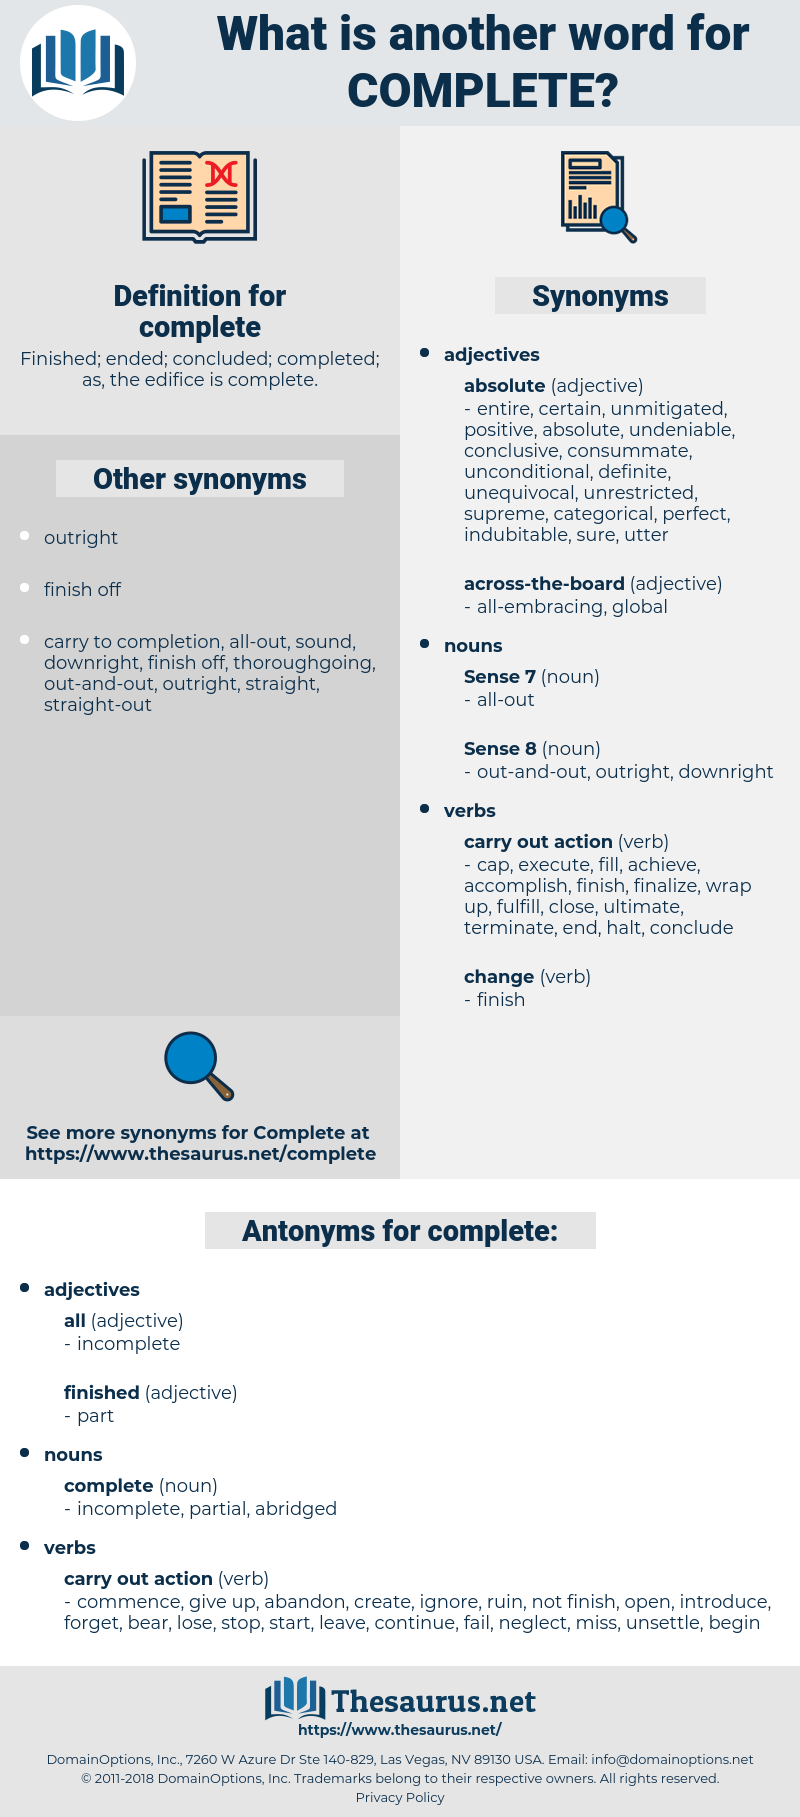 Synonyms for COMPLETE, Antonyms for COMPLETE - Thesaurus.net